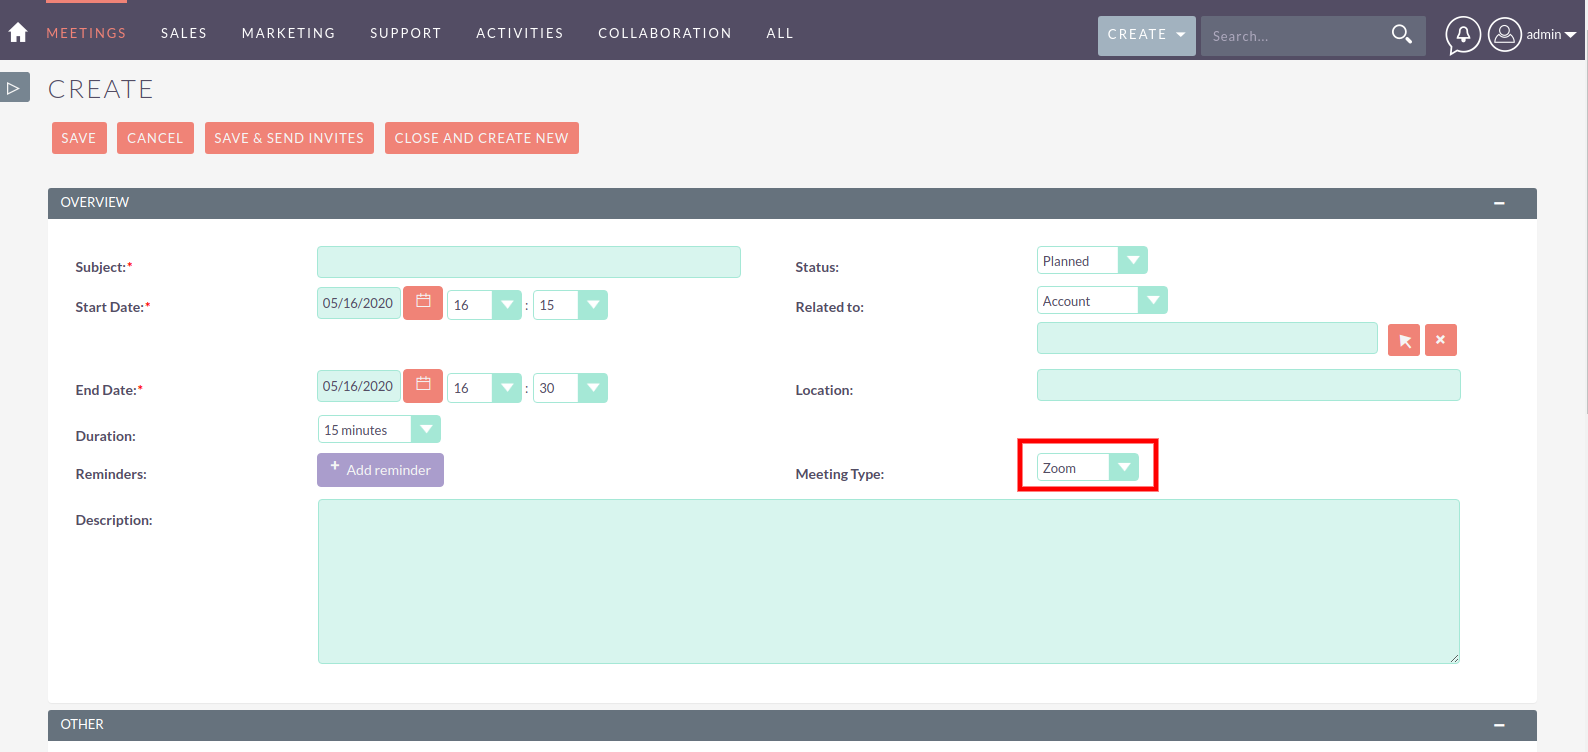 Zoom Integration for SuiteCRM create meeting